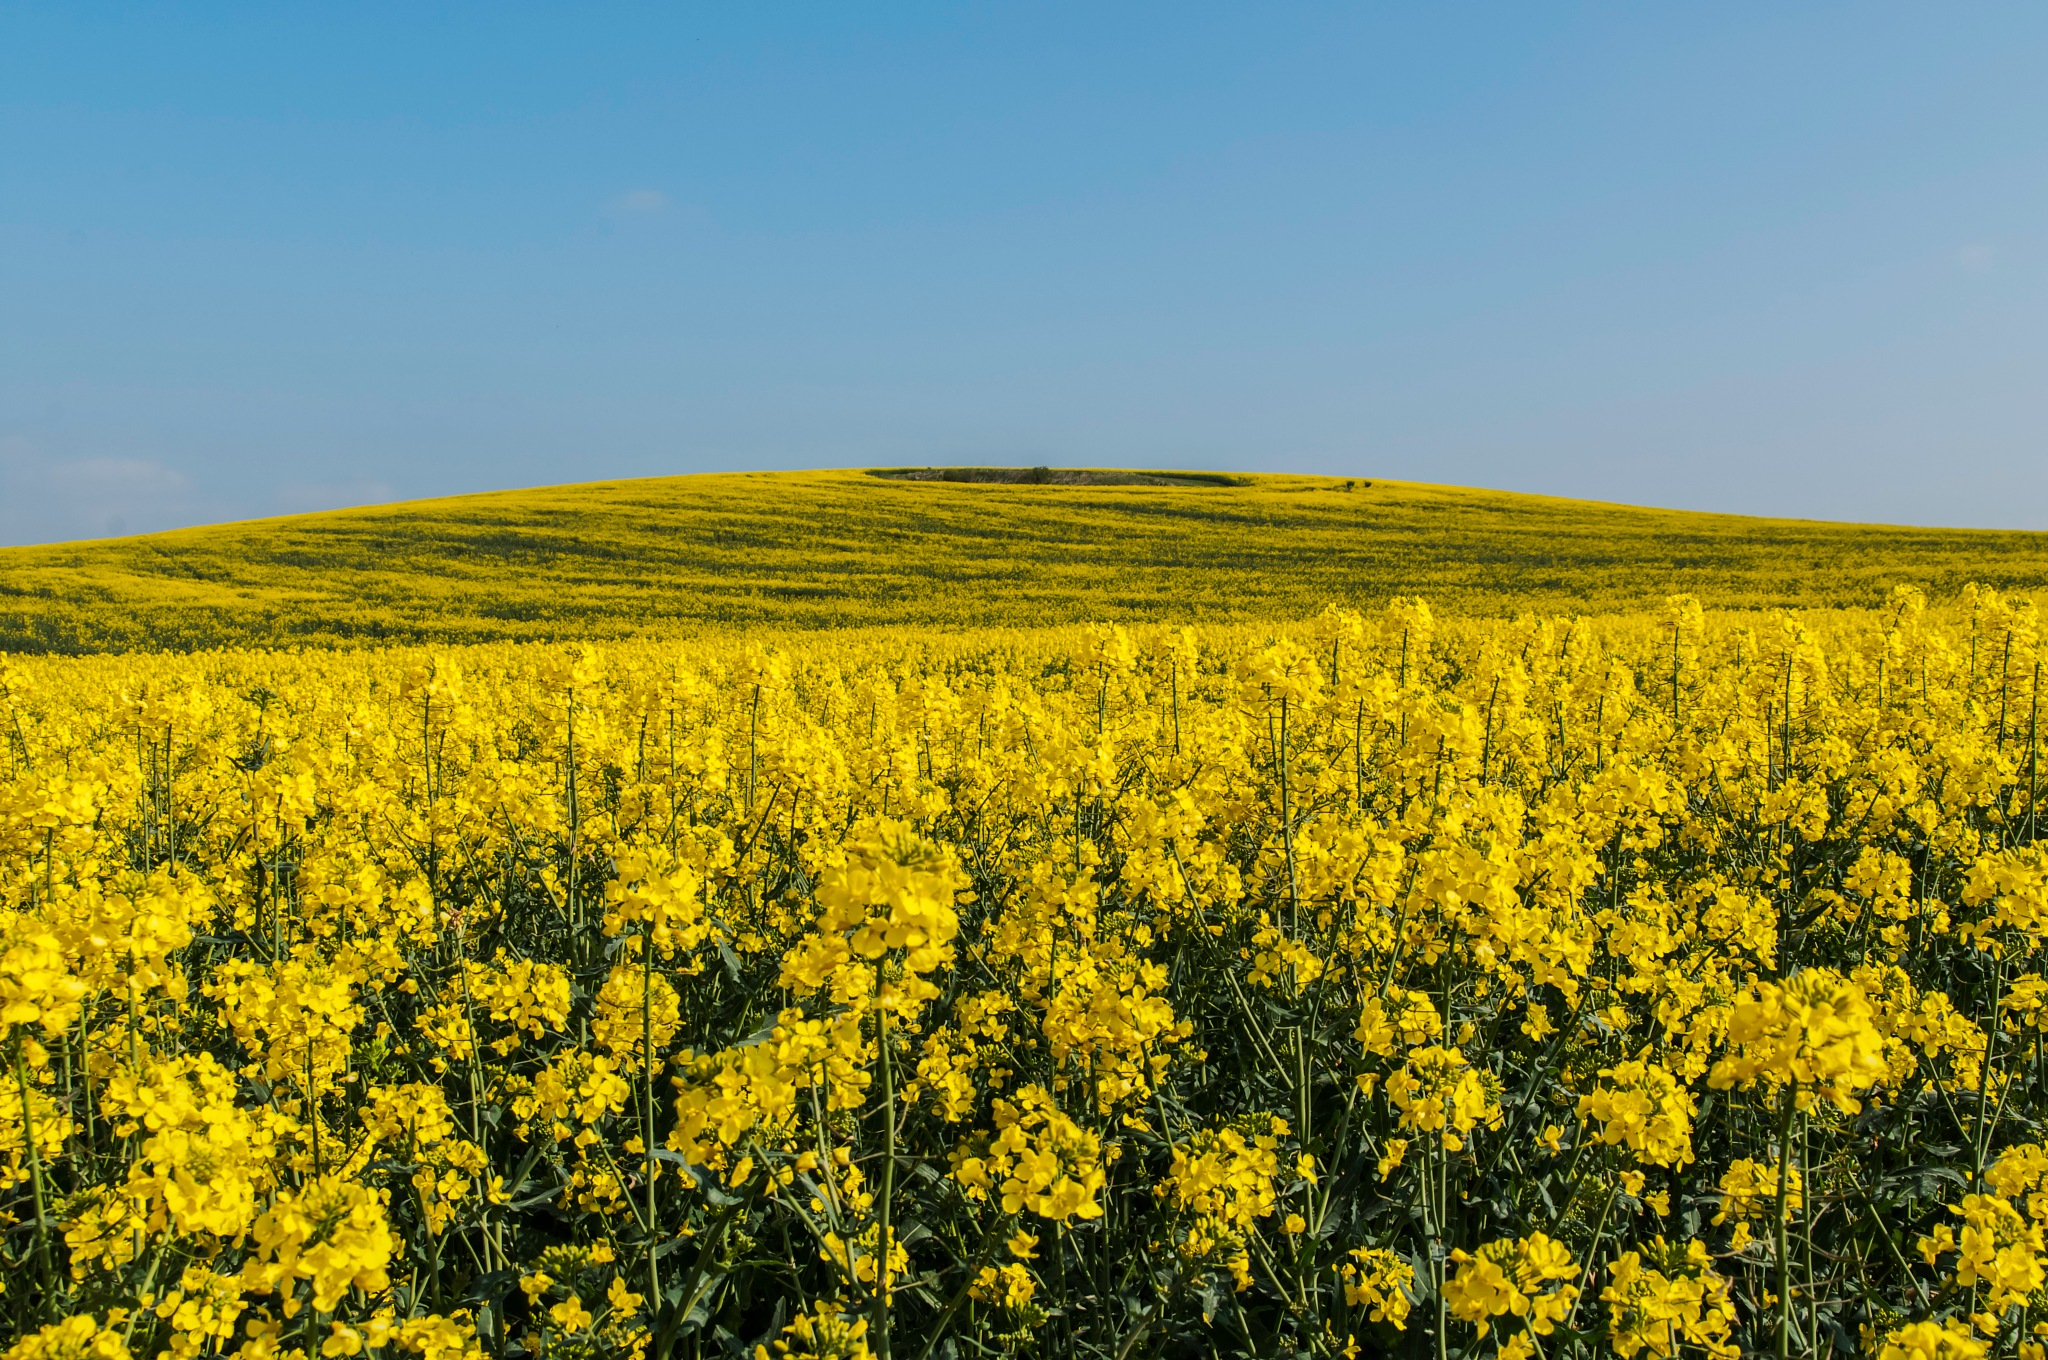 Yellow by Jim Hellier